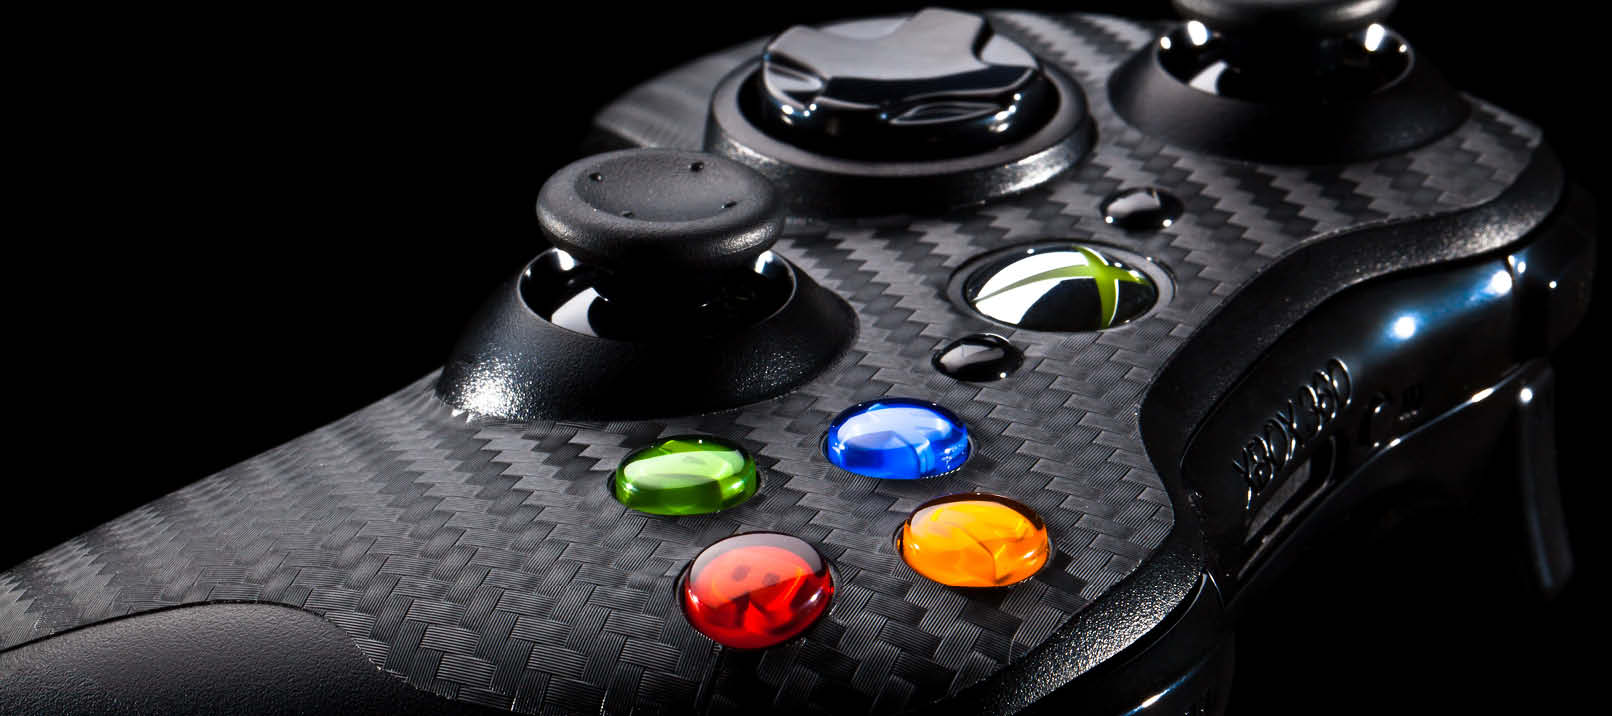 xbox360 controller side carbon black Xbox 360 Nearly Had Different Name To Catch Up With PlayStation